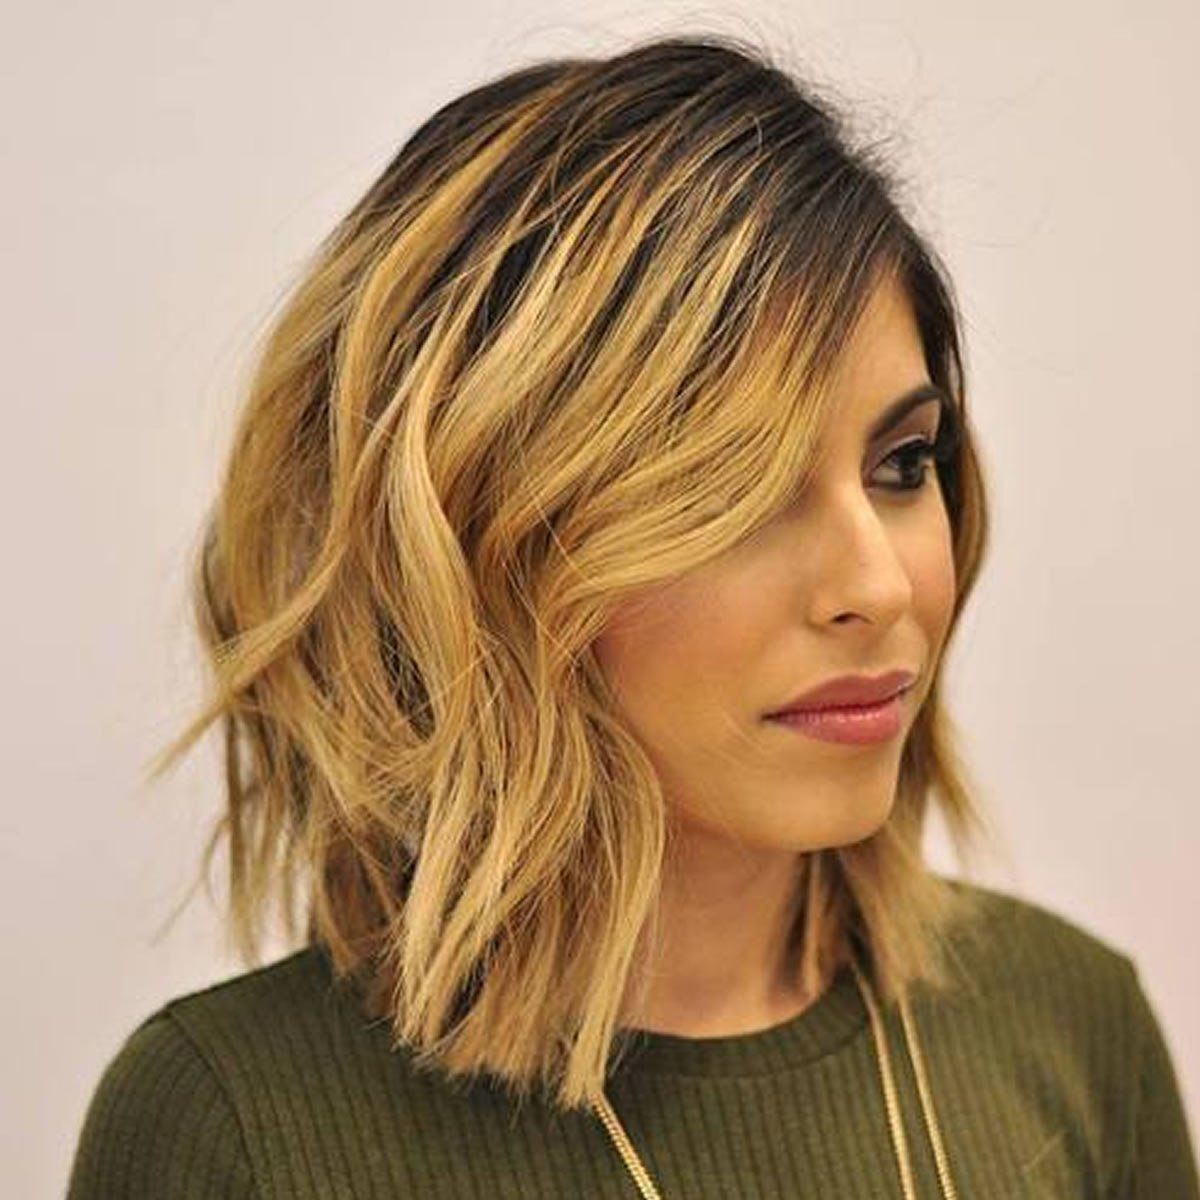 New Bob Hairstyles For 2018 Inspiring 60 Long Bob Haircut Ideas With Pictures